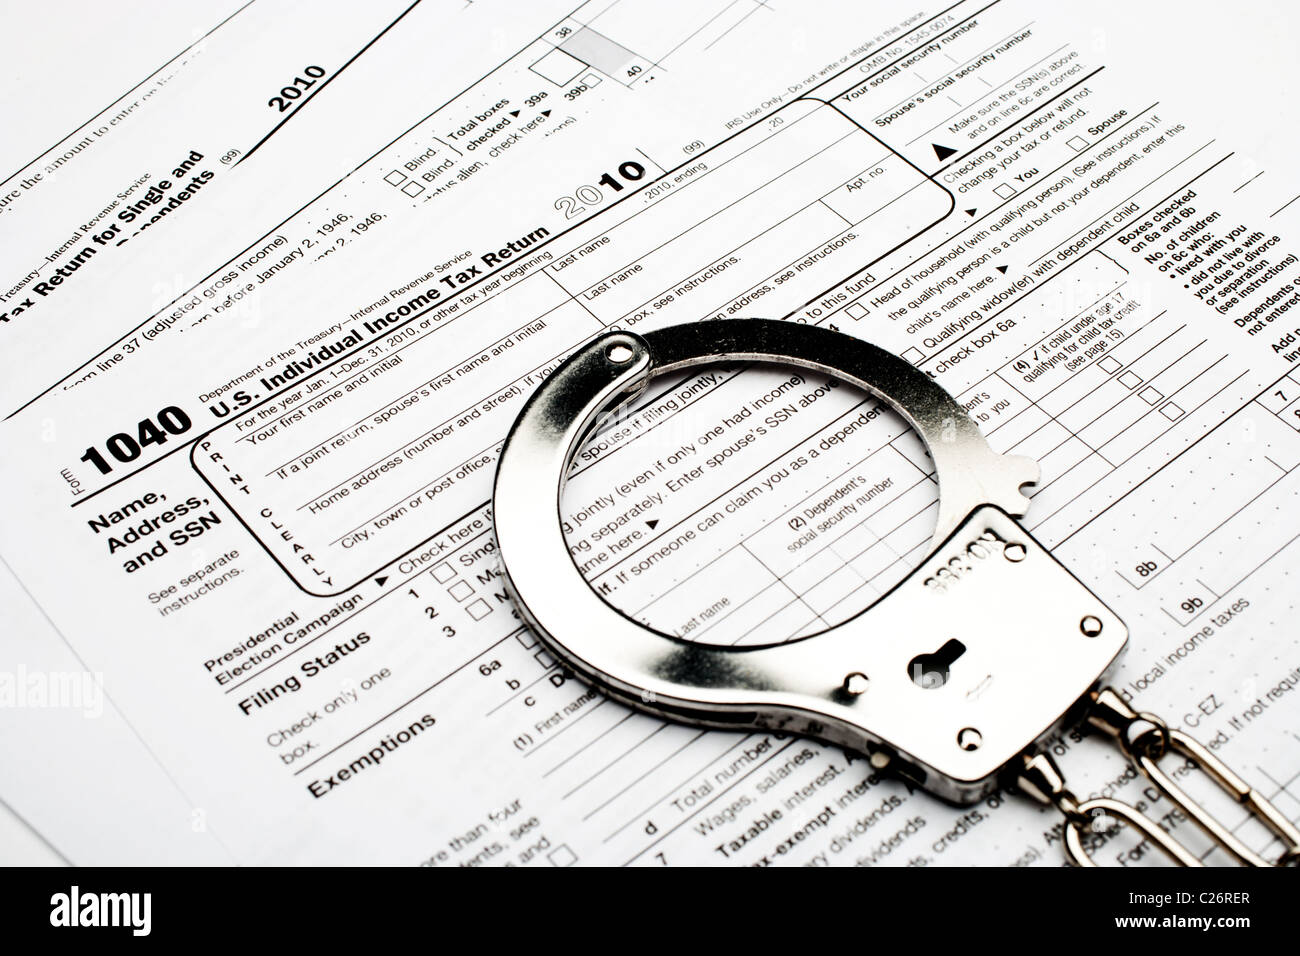 Handcuffs on an american 1040 income tax form indicating tax fraud handcuffs on an american 1040 income tax form indicating tax fraud or evasion falaconquin